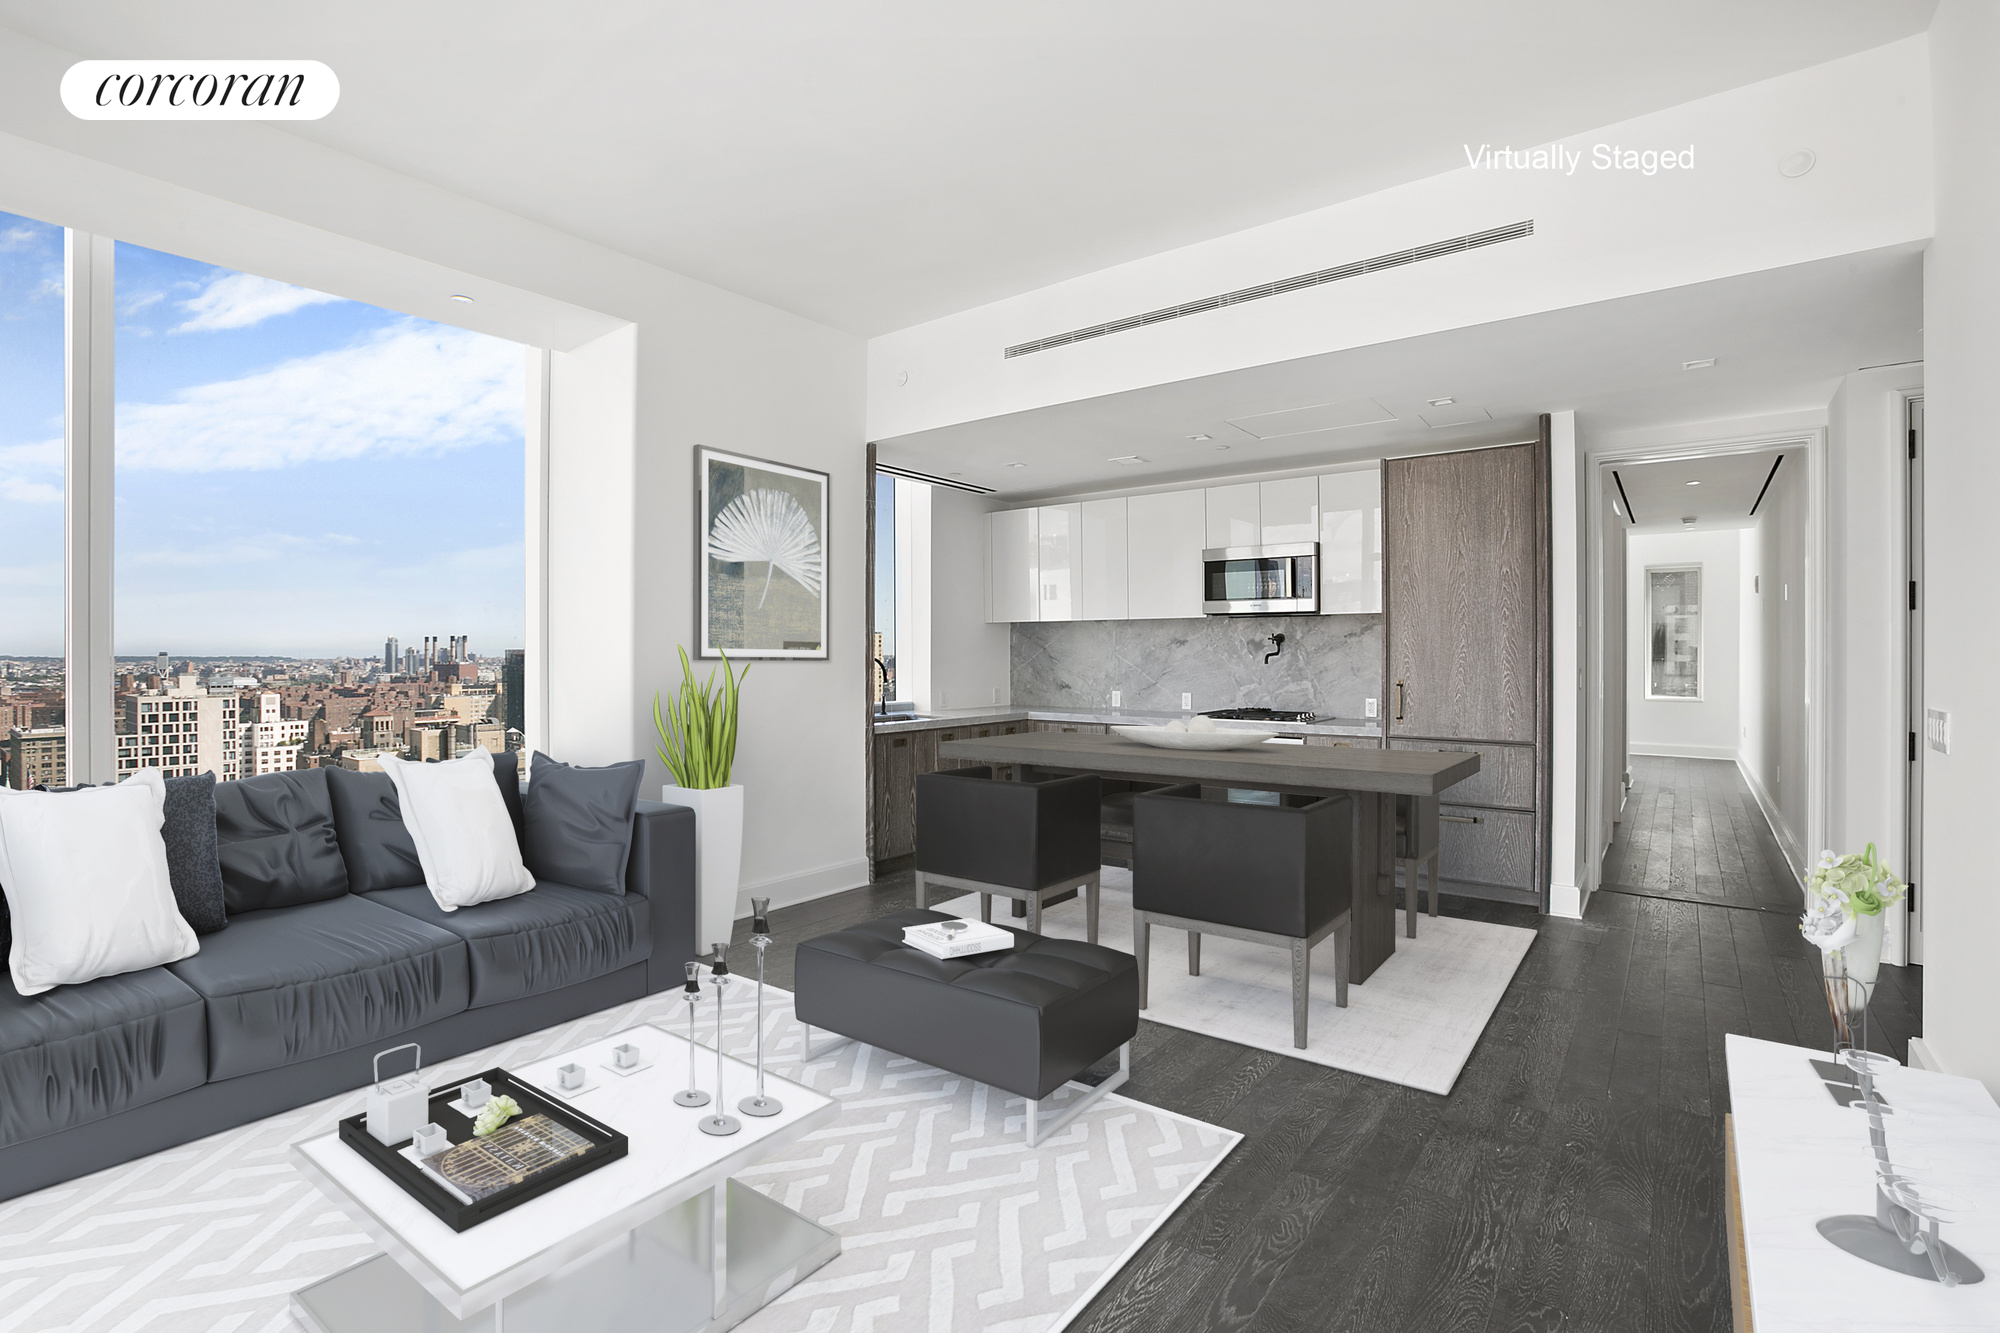 Welcome to this breathtaking two bedroom residence featuring floor-to-ceiling windows with stunning Midtown skyline views and three exposures to the North, East and South. These Floor-to-ceiling windows with high ceilings offer a dramatic cityscape that includes the Empire State Building, Chrysler Building, the clock tower at 1 Madison Avenue, the East River, and Madison Square and Gramercy Park.A great floor-plan, walks you right into a very large and spacious living/dining room and open kitchen complete with marble countertops and backsplash, Nanz hardware, Sub-Zero and Miele appliances, and solid white oak lower cabinetry.The views continue to both bedrooms located on opposite wings of the apartment. The Master Bedroom has an extra large walk-in-closet, and southern exposure with views all the way to the Brooklyn Bridge.The Bathrooms are also a sight! A beautiful selection of marble, custom wood vanities, recessed medicine cabinets, Waterworks fixtures, enclosed showers and a soak in jacuzzi tub in the Master-bath.The residences at Madison Square Park Tower are perfectly positioned in one of the most iconic and culturally sophisticated neighborhoods in Manhattan- the Flatiron District at Madison Square Park. Transforming the downtown skyline, the building's glass silhouette stands sixty-five stories and rises seven hundred and seventy seven feet in the sky.The condo's amenities are also top notch. Located throughout five floors, you'll have access to a state of the art fitness center with boxing and private training suite, a golf simulator, a basketball court, kid's playroom, library, billiards, cards room, terrace with outdoor grill, and two gracious entertaining spaces including a fifty-fourth floor lounge.